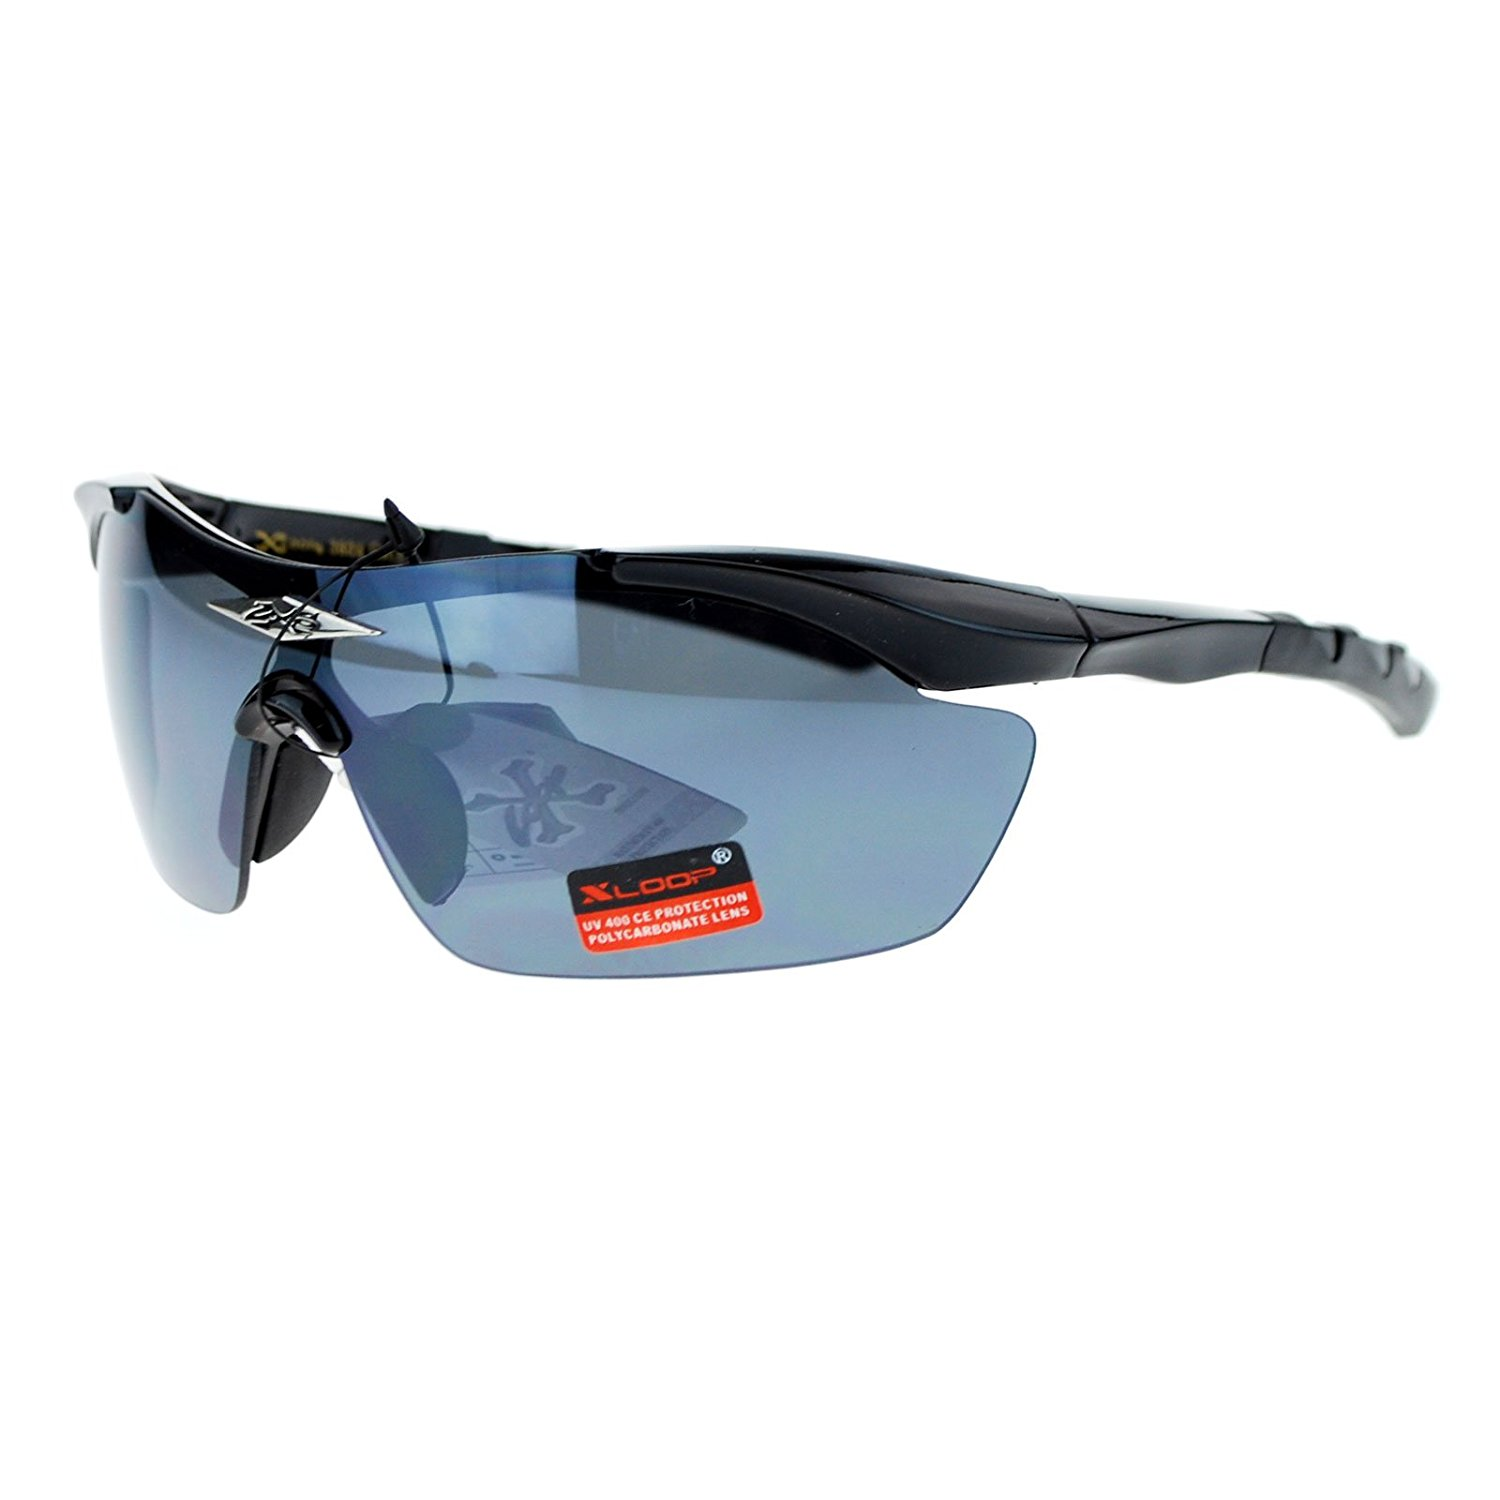 8d3771bf61 Get Quotations · X Loop Shield Baseball Rimless Half Rim Sport Sunglasses